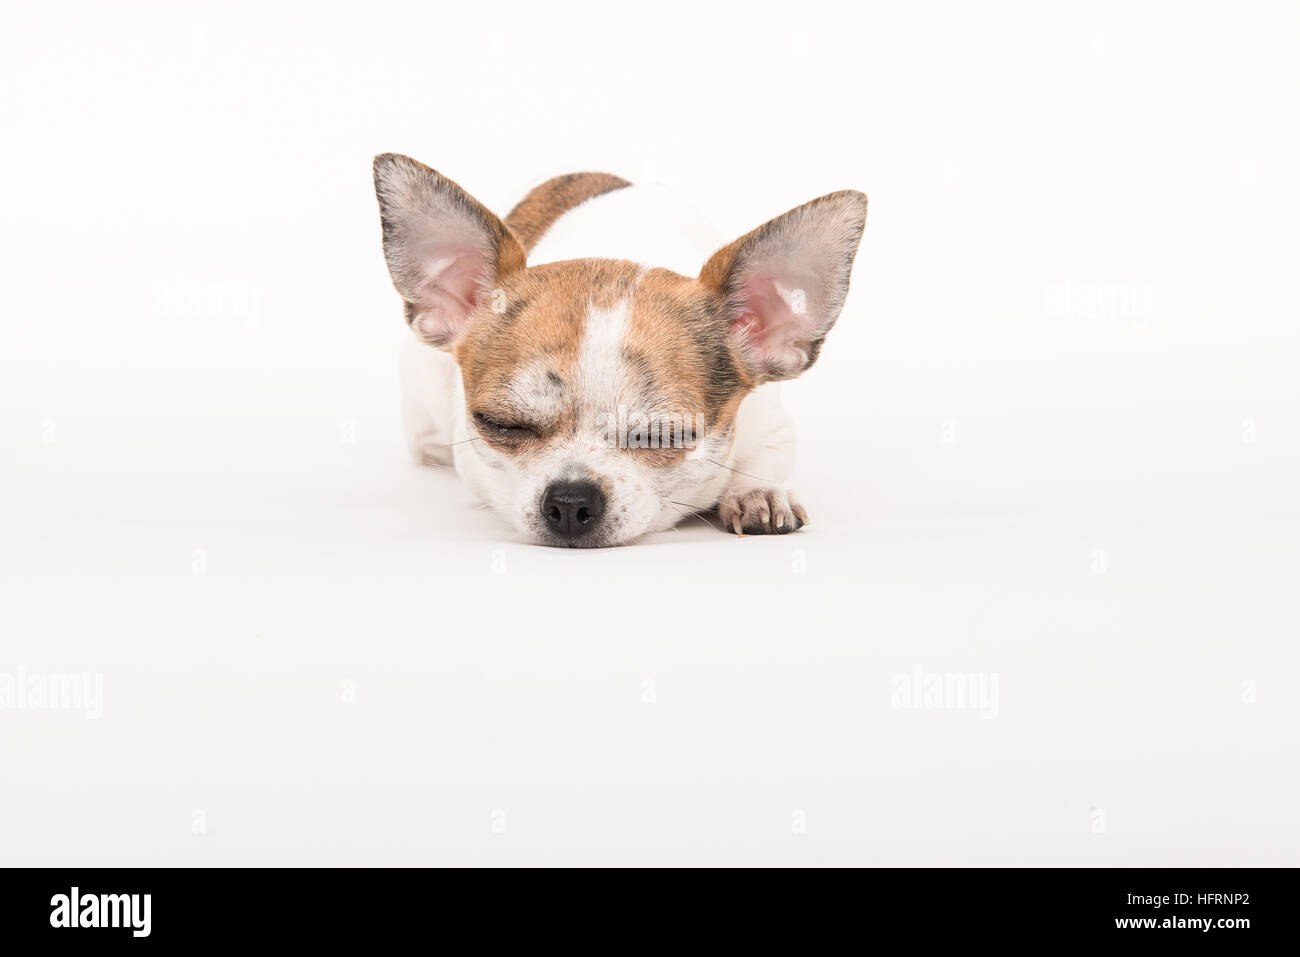 Sleeping chihuahua dog lying on the floor in a soft off-white surrounding - Stock Image